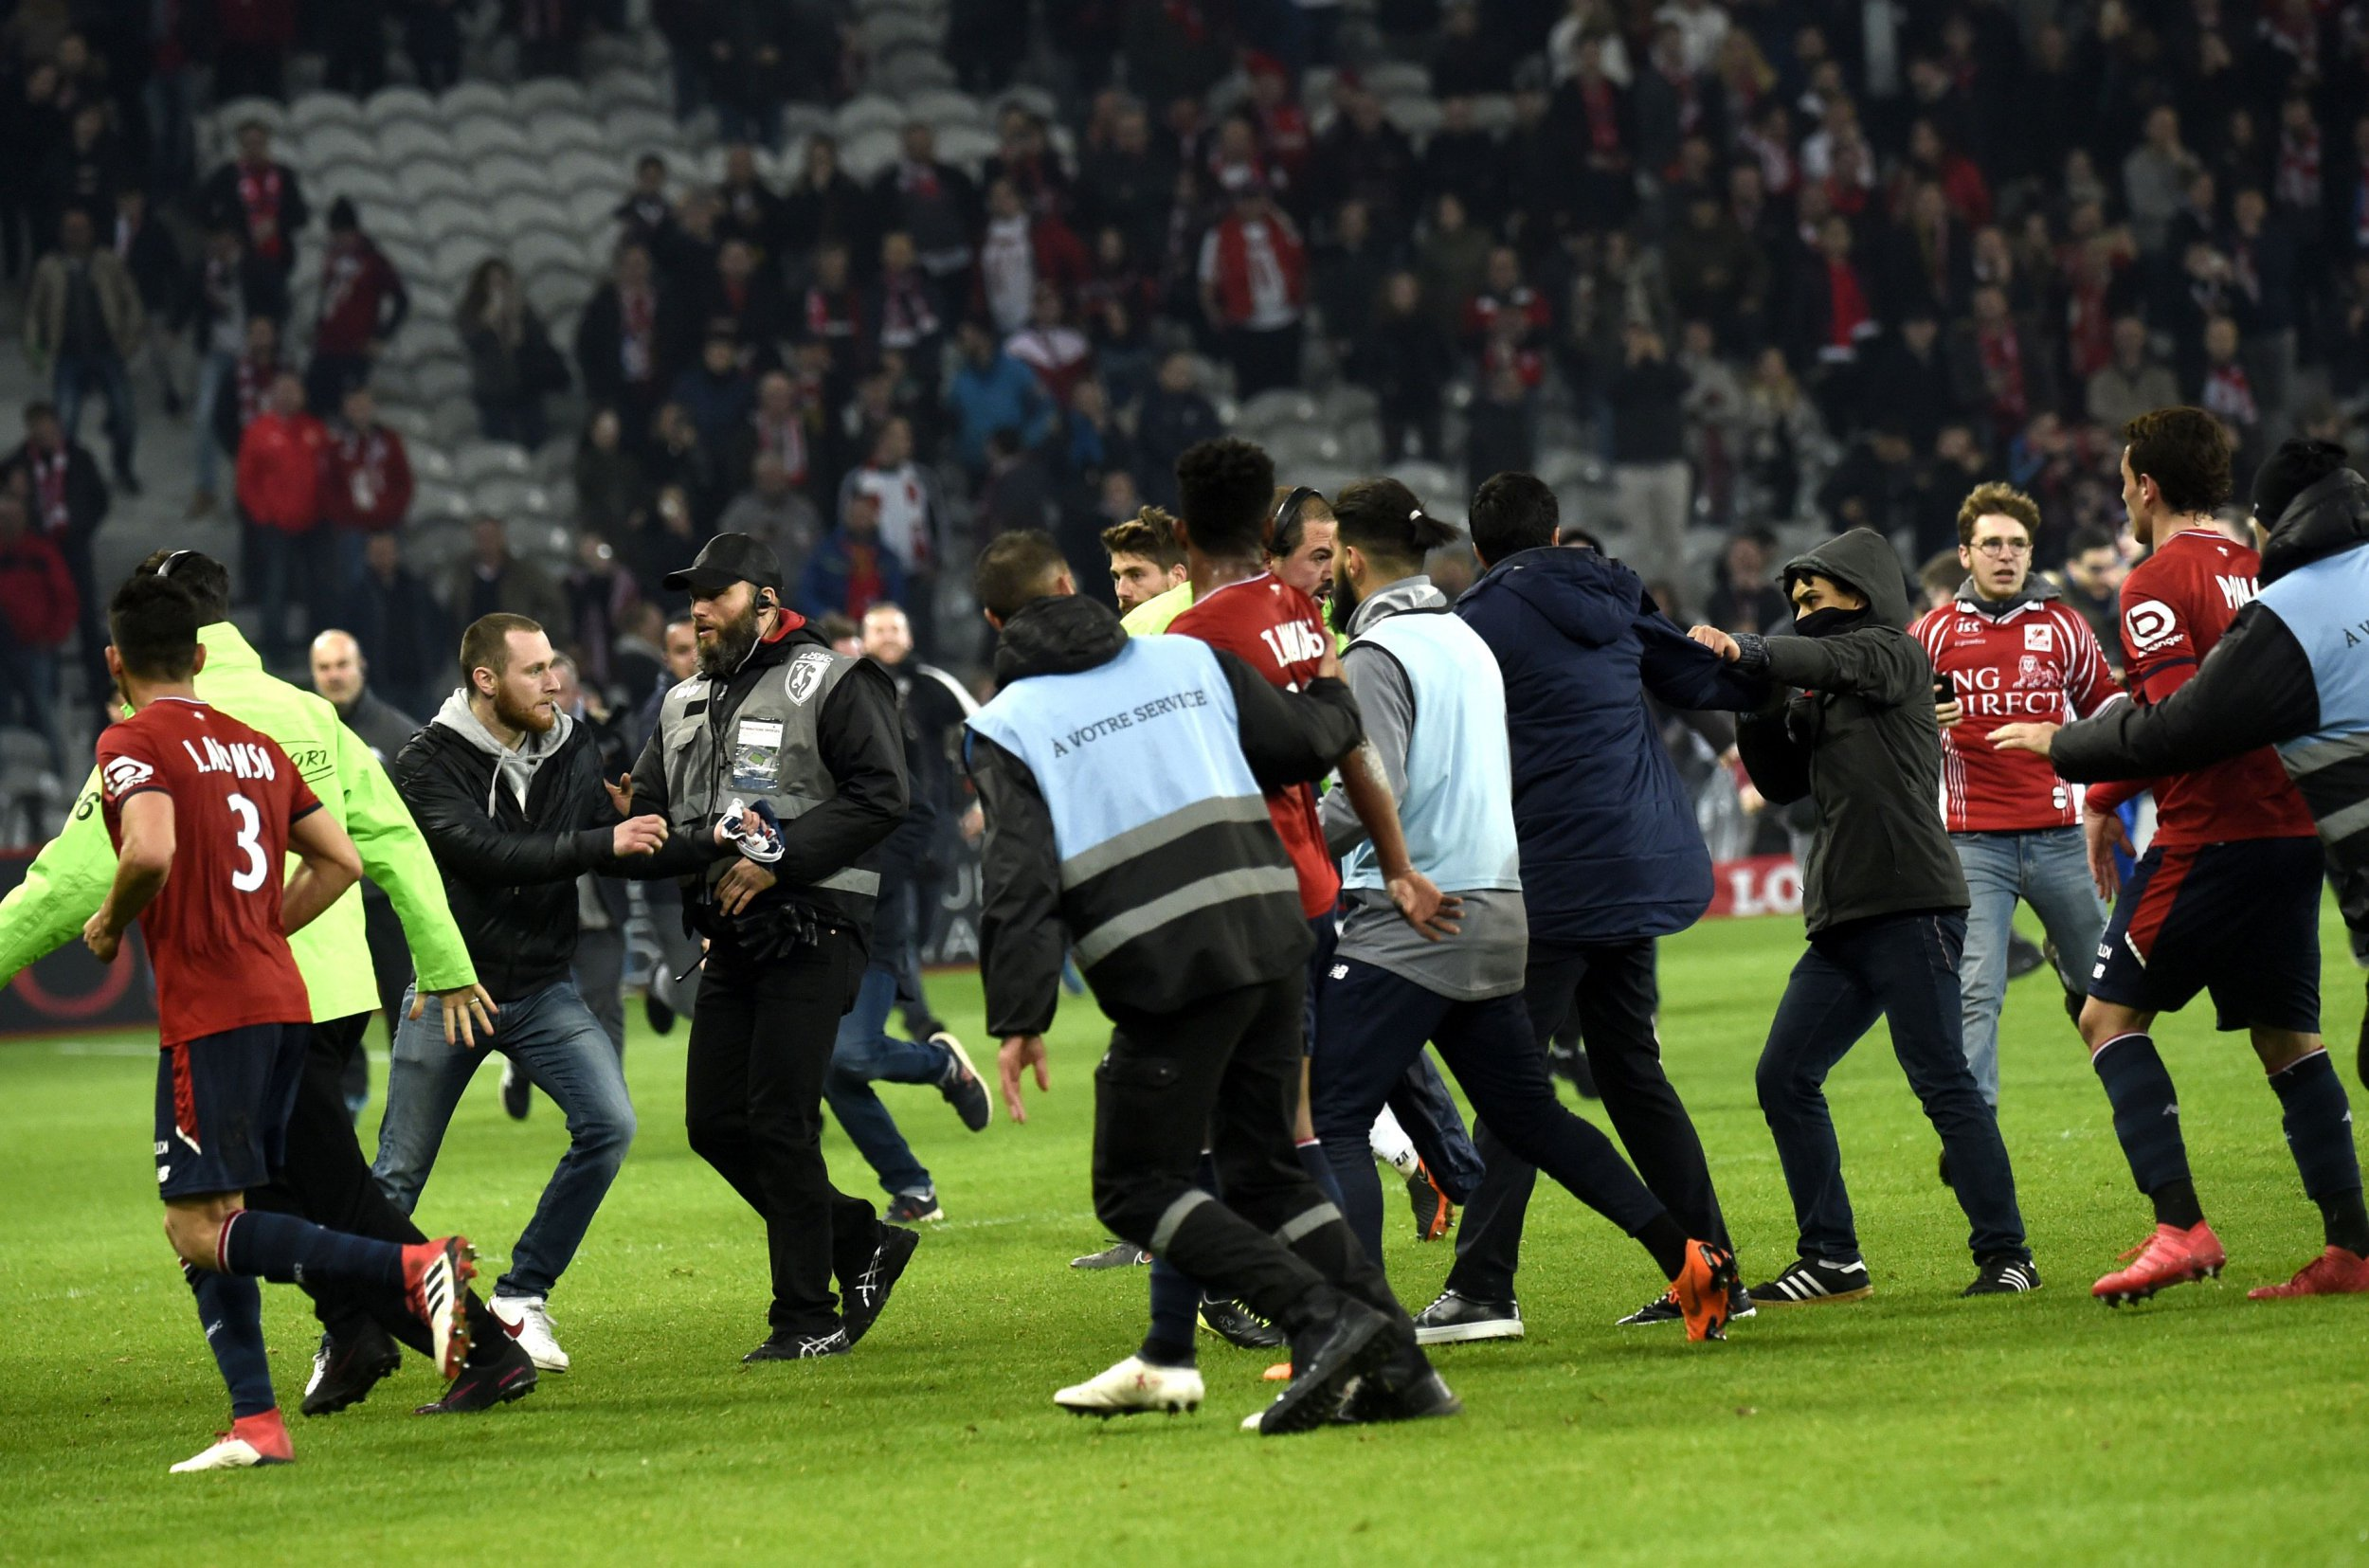 Lille' supporters invade the pitch at the end of the French L1 football match between Lille and Montpellier on March 10, 2018 at the Pierre Mauroy stadium in Lille, northern France. / AFP PHOTO / FRANCOIS LO PRESTIFRANCOIS LO PRESTI/AFP/Getty Images